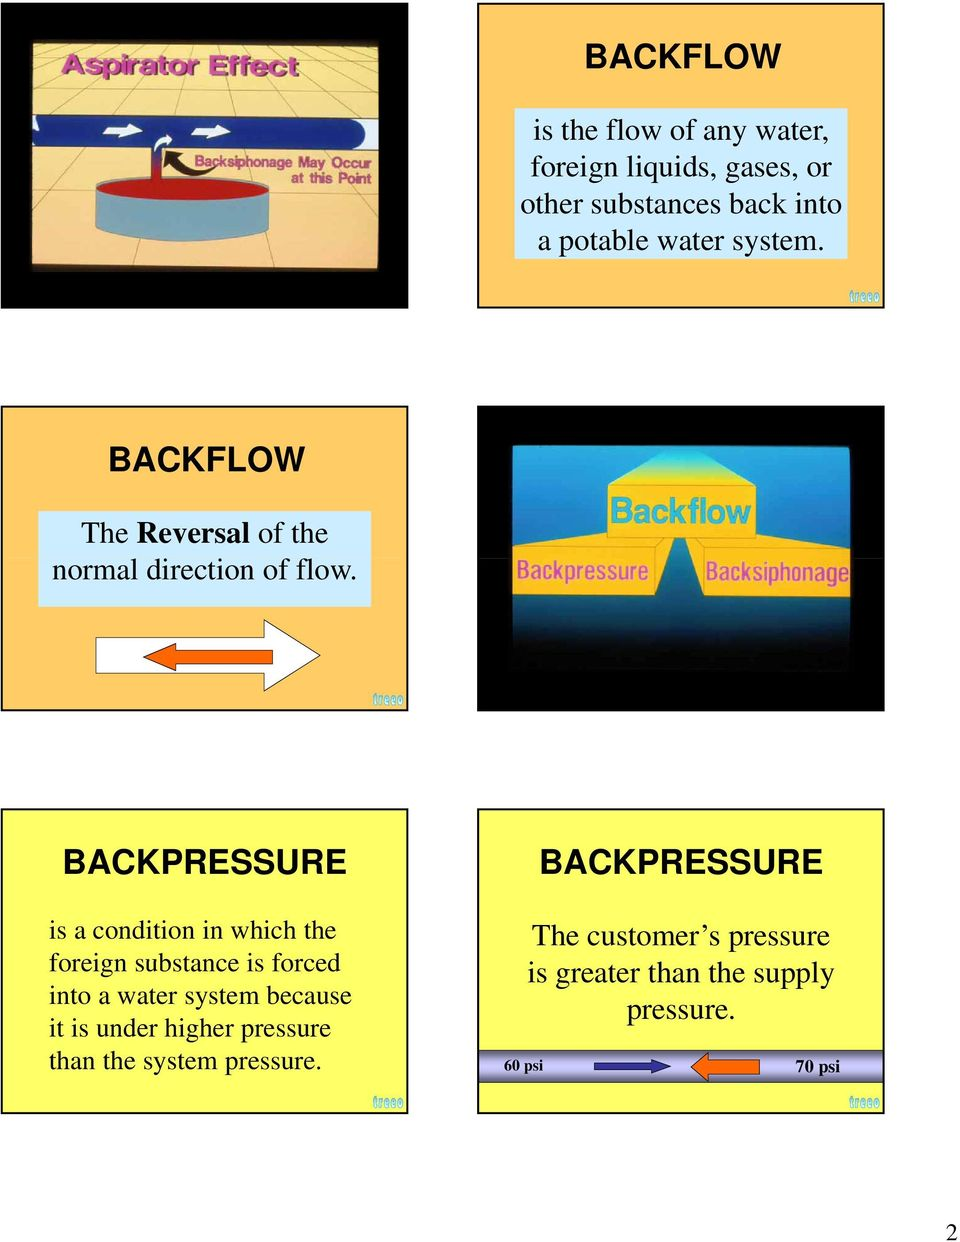 BACKPRESSURE is a condition in which the foreign substance is forced into a water system because it is